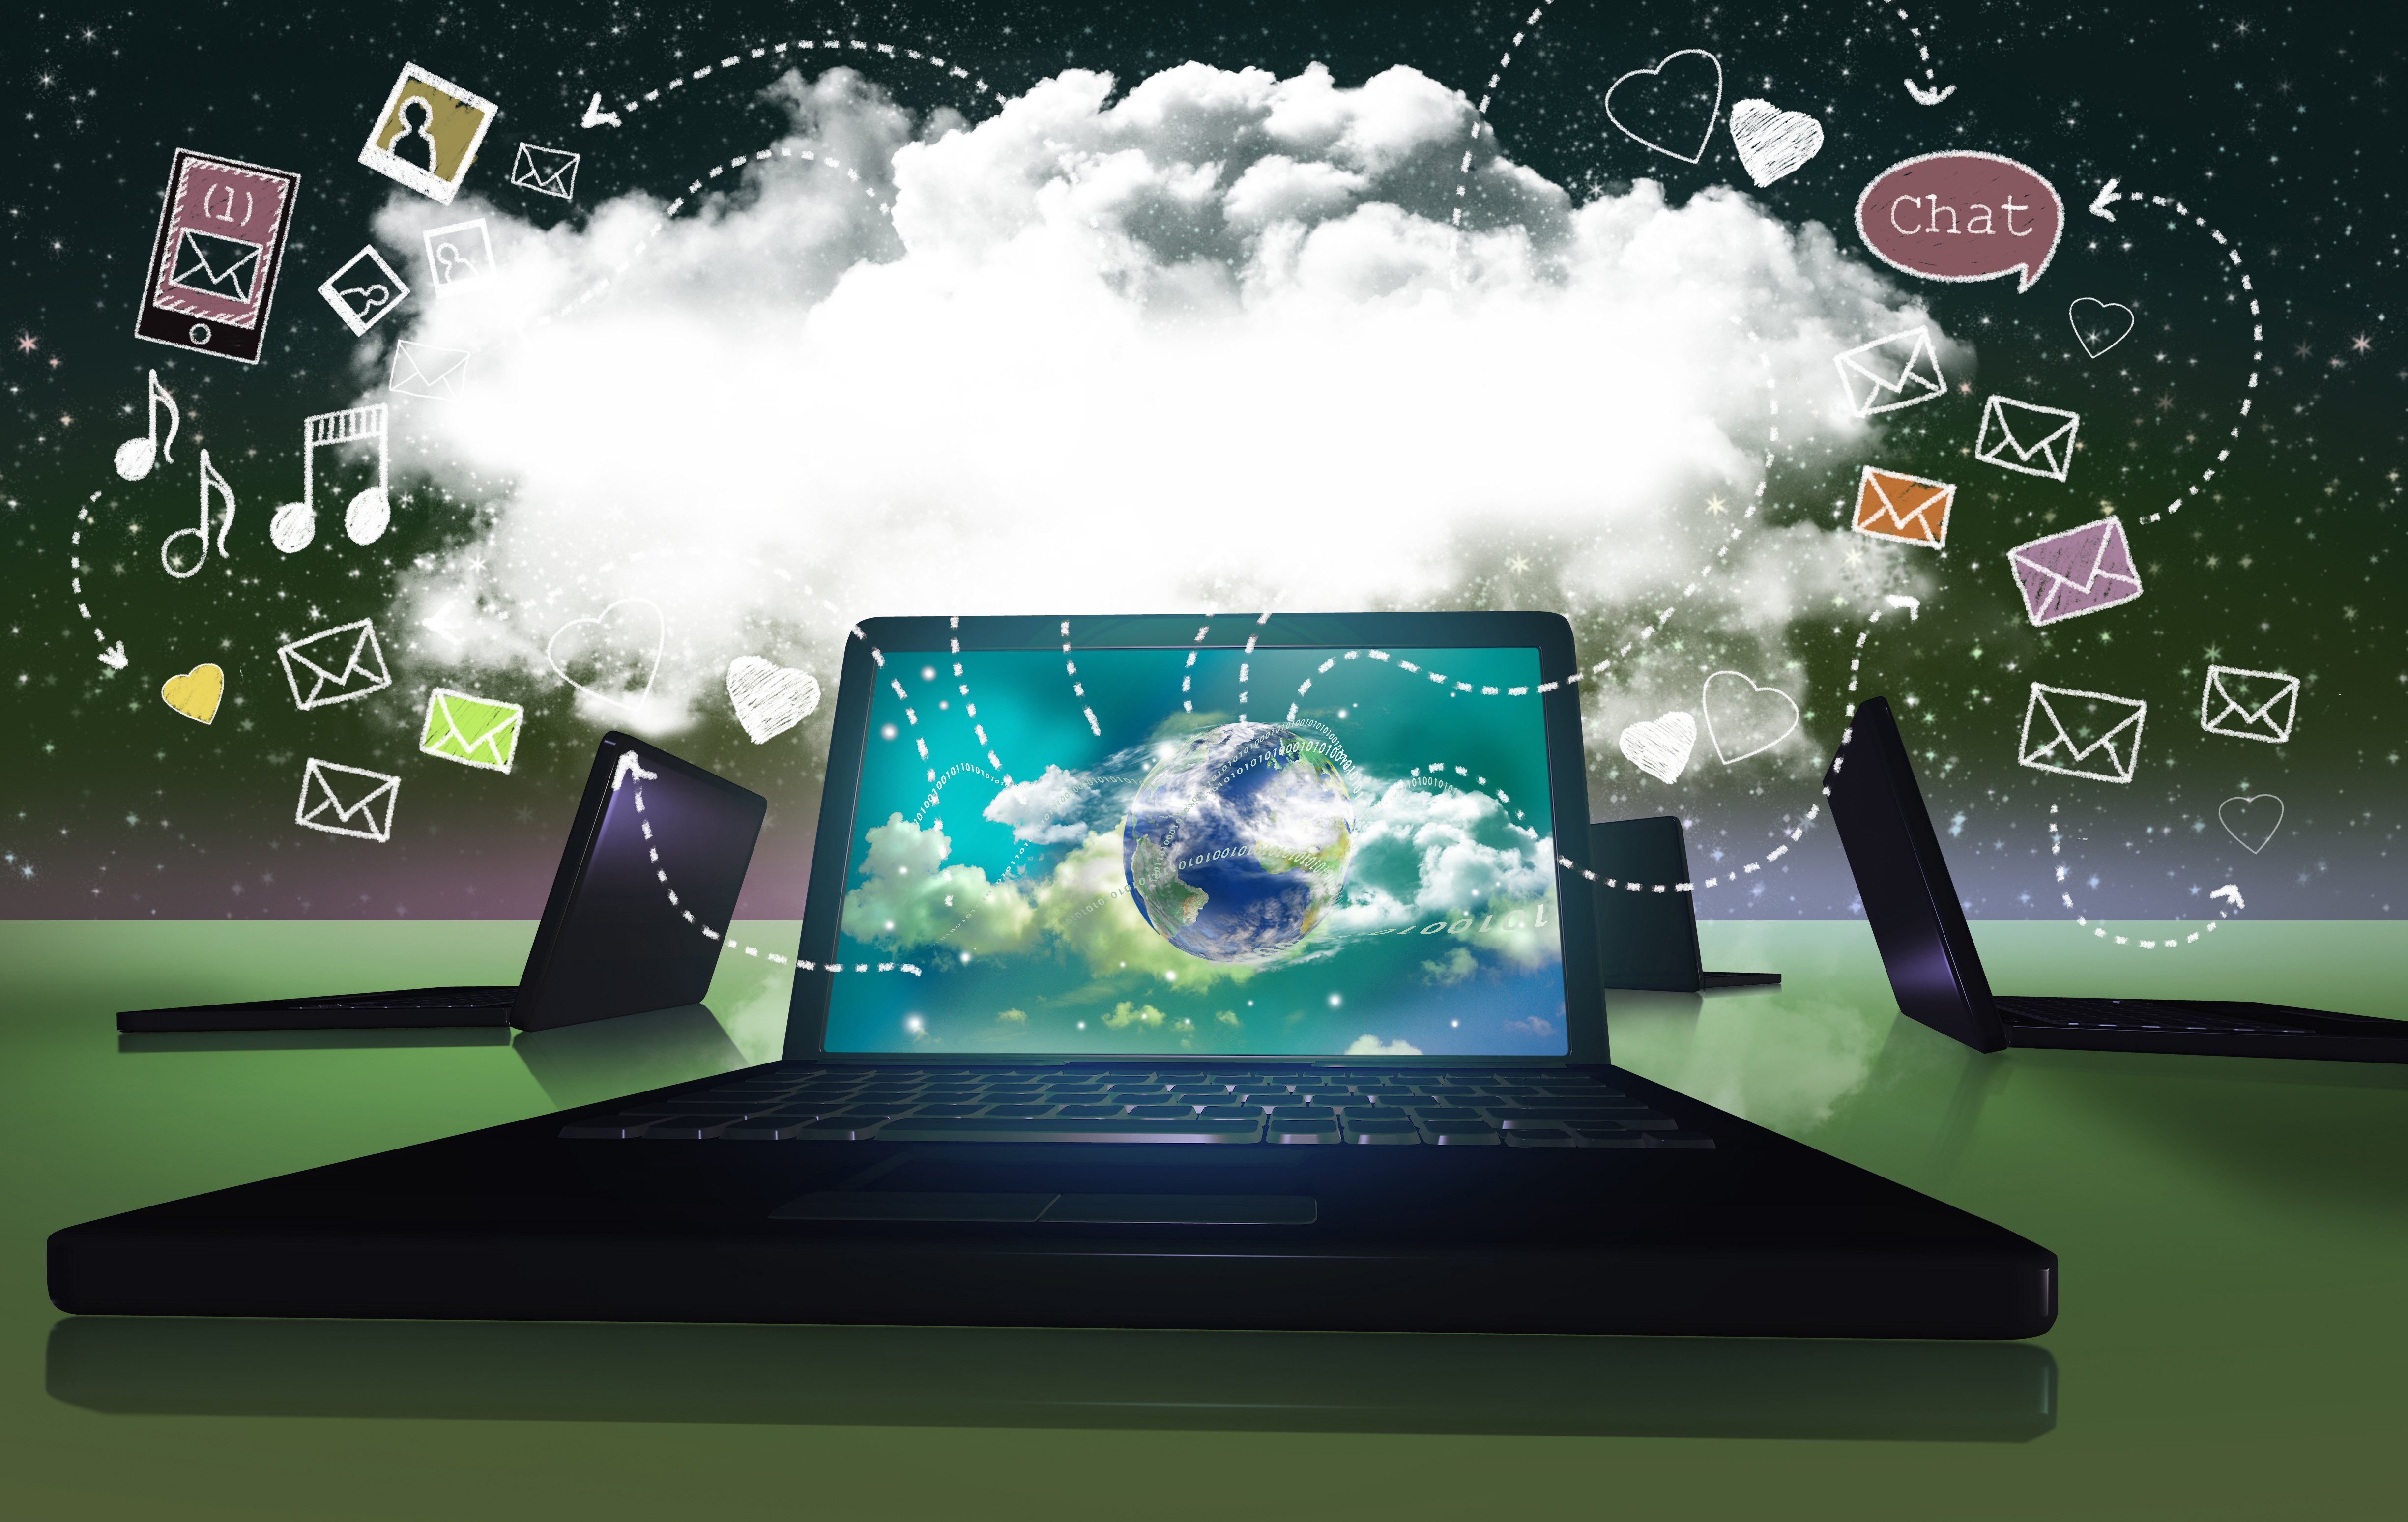 Media Traffic Concept in 3D Illustration from Laptops to Cloud or to ones Mind illustrated with a Design mix of 3D and Classic Drawing Style on a Night Sky